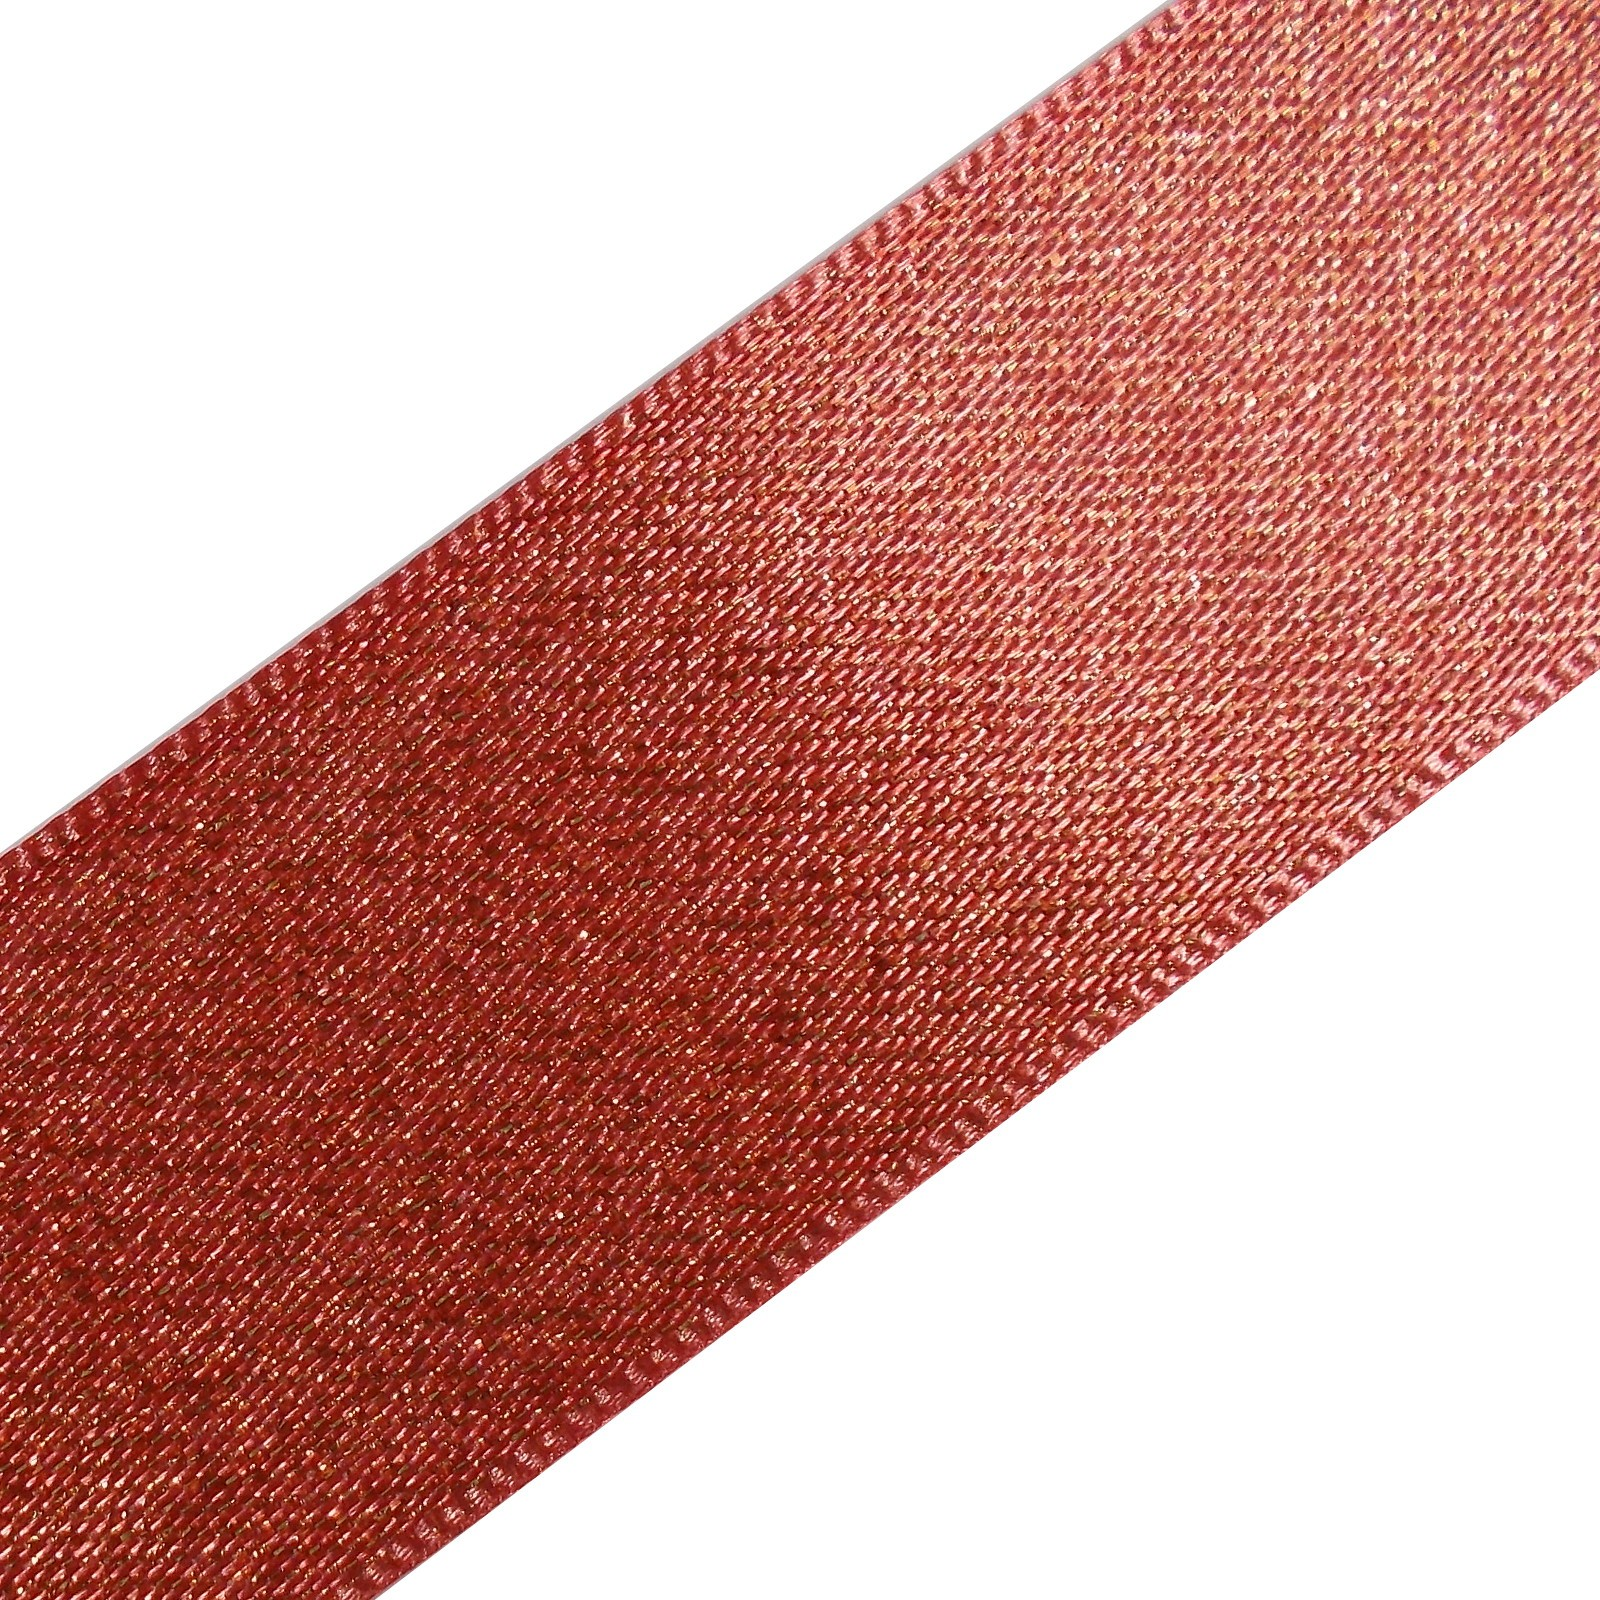 Berisfords Glitter Satin Ribbon 15mm wide Coral Pink 1 metre length